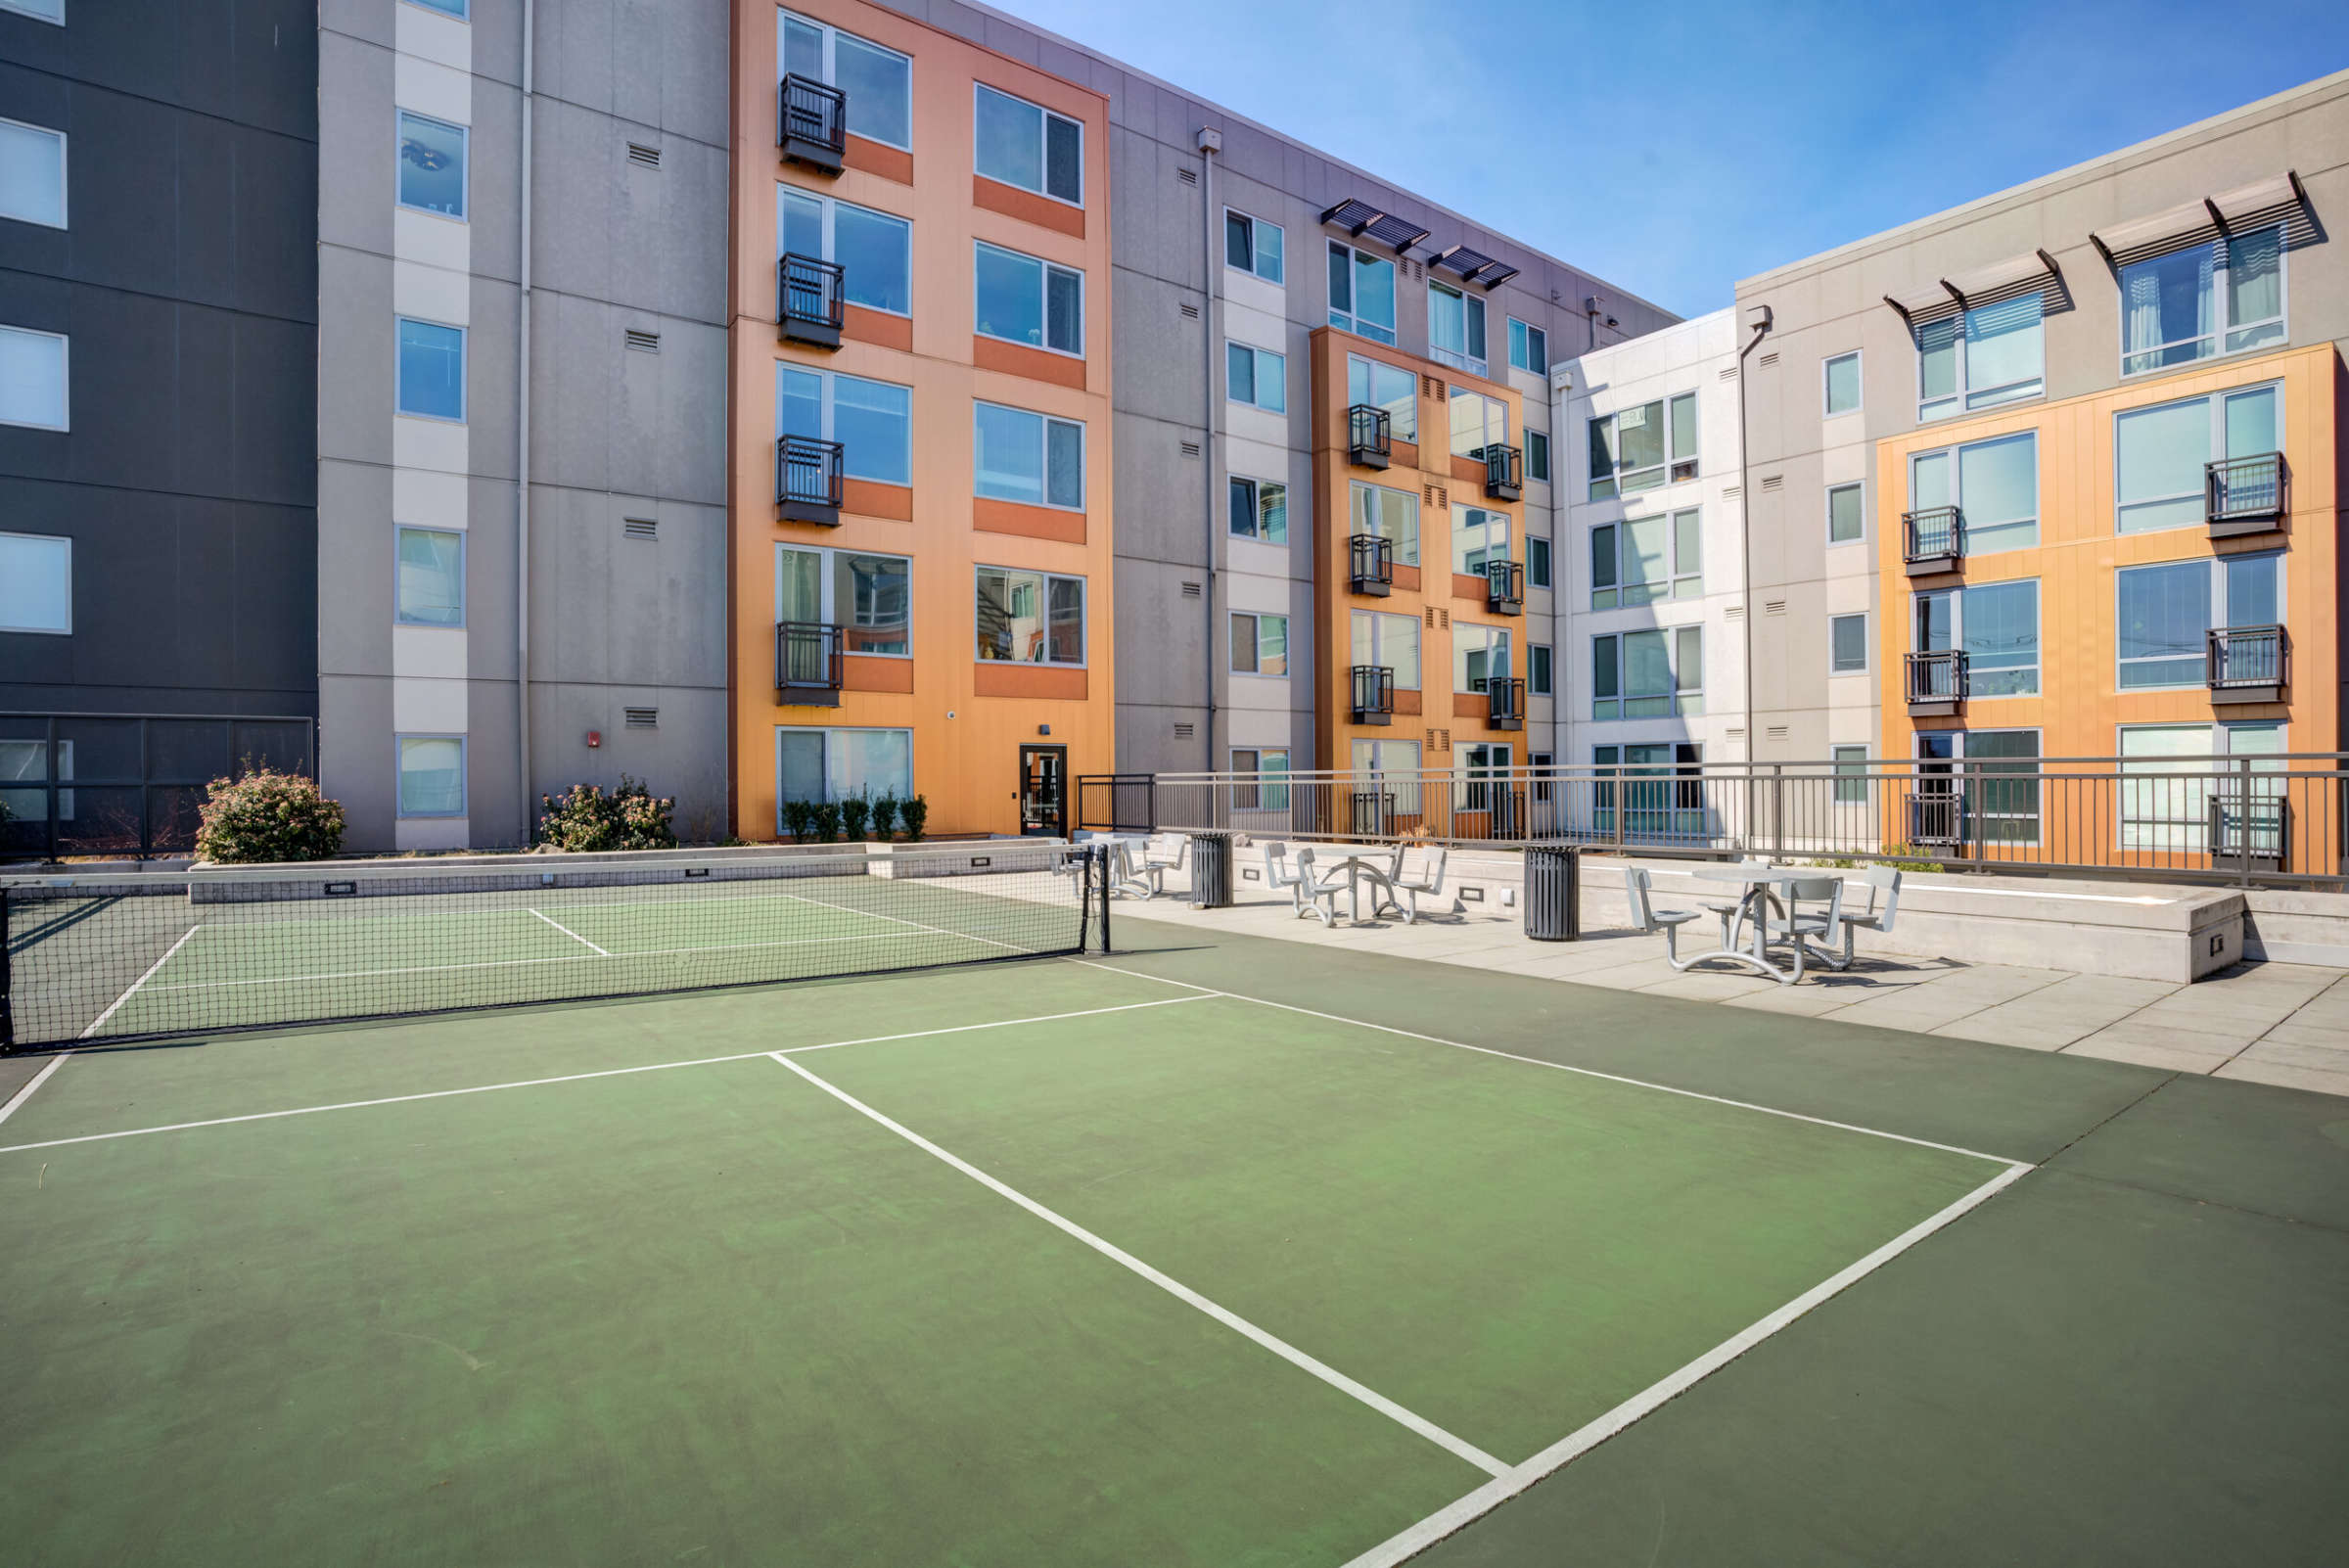 Apartment building exterior and view of pickle ball court